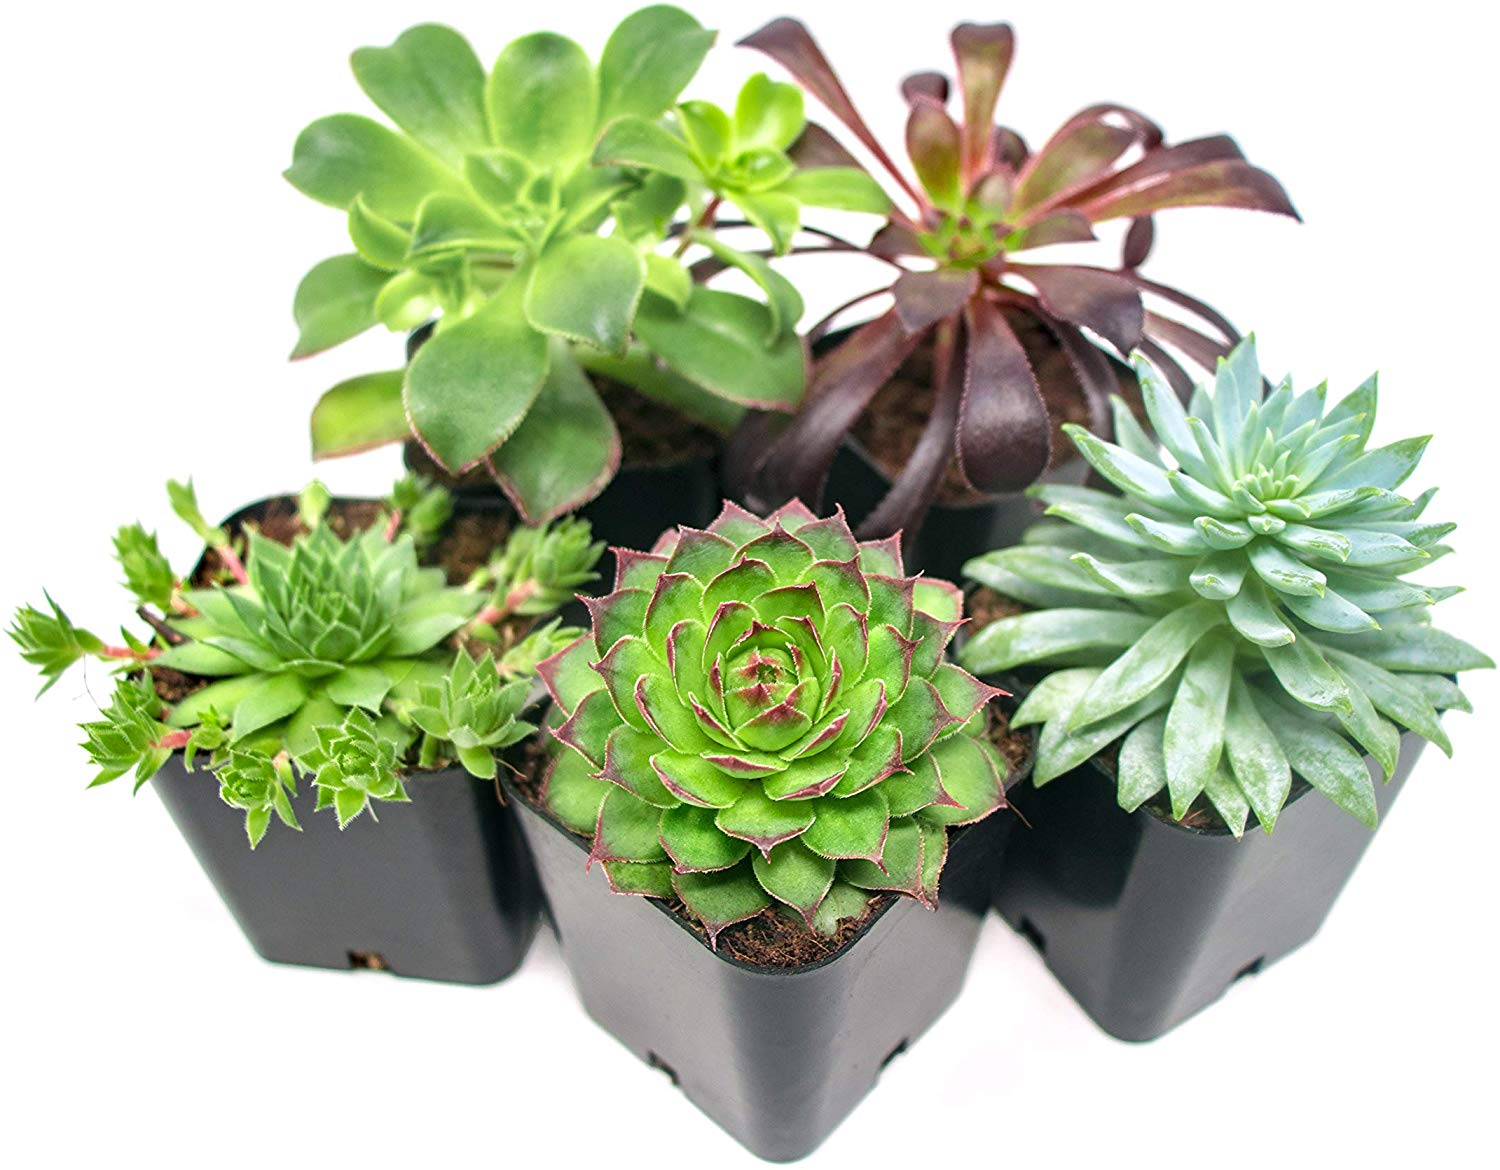 5 Pack of succulent plants from Amazon